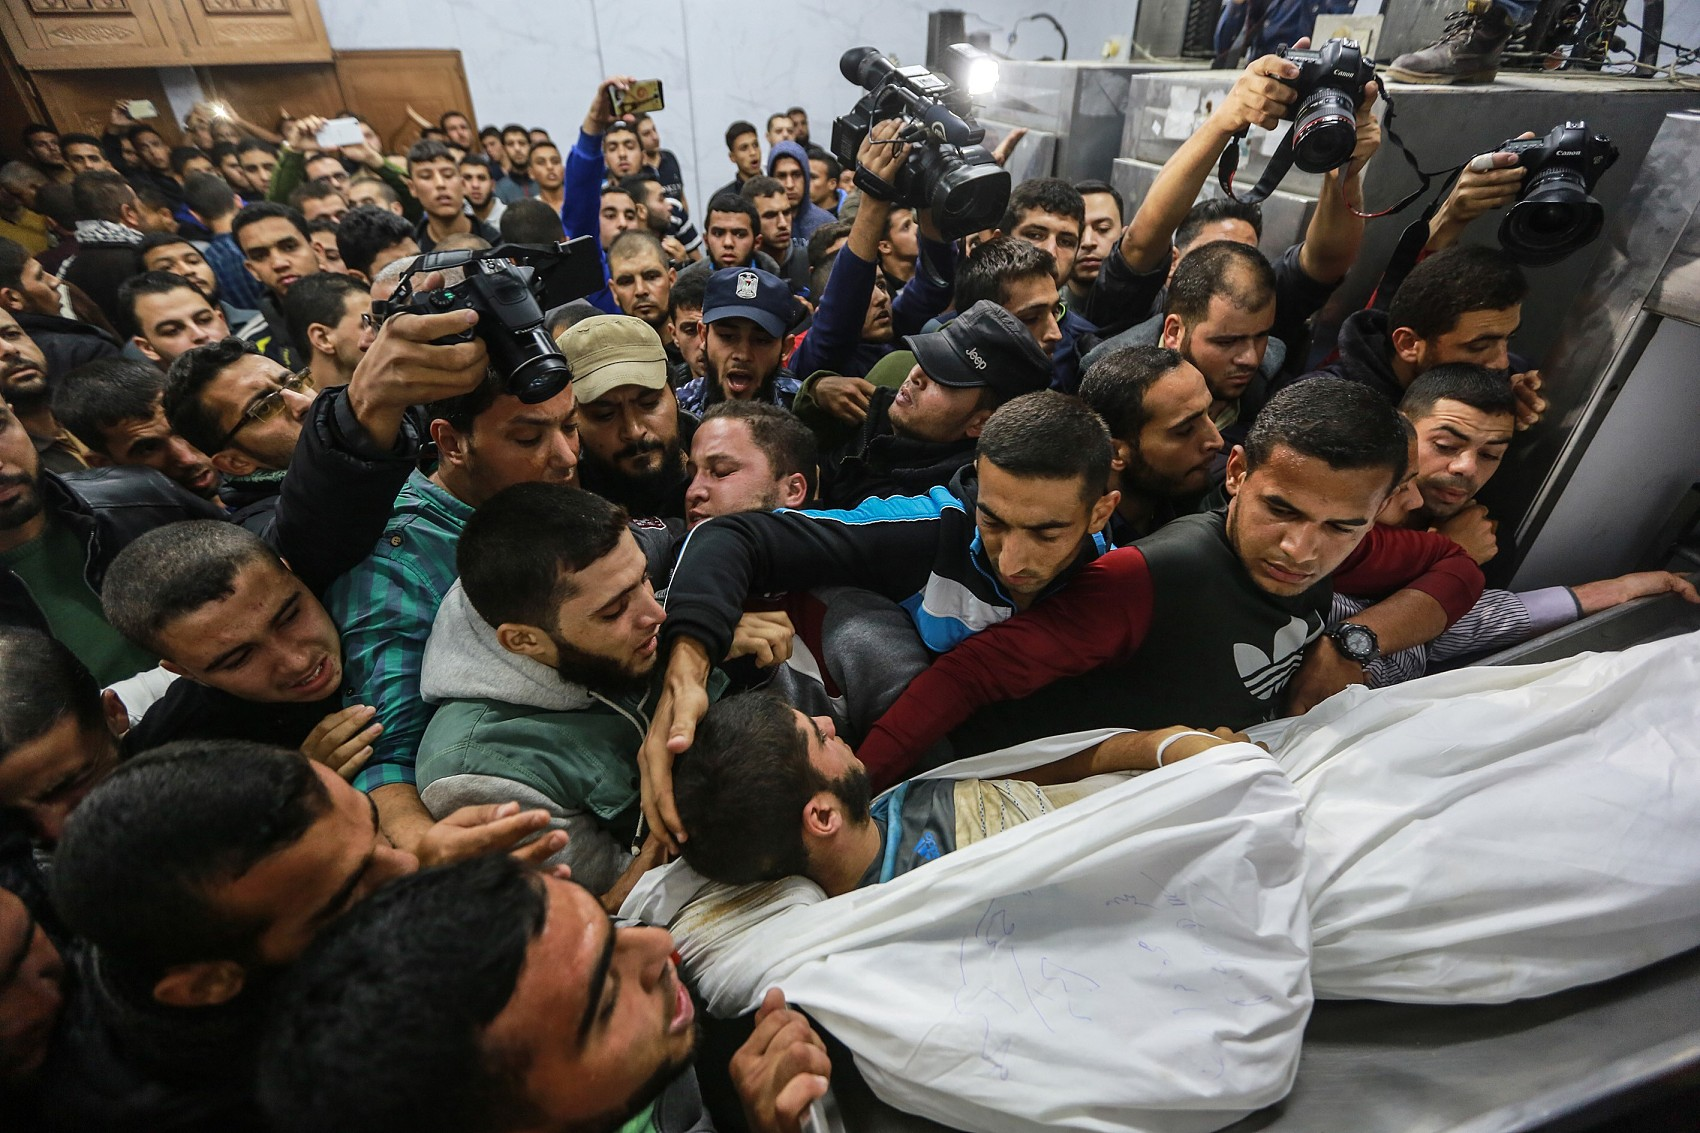 Gaza militant group: 5 members dead in Israel tunnel attack